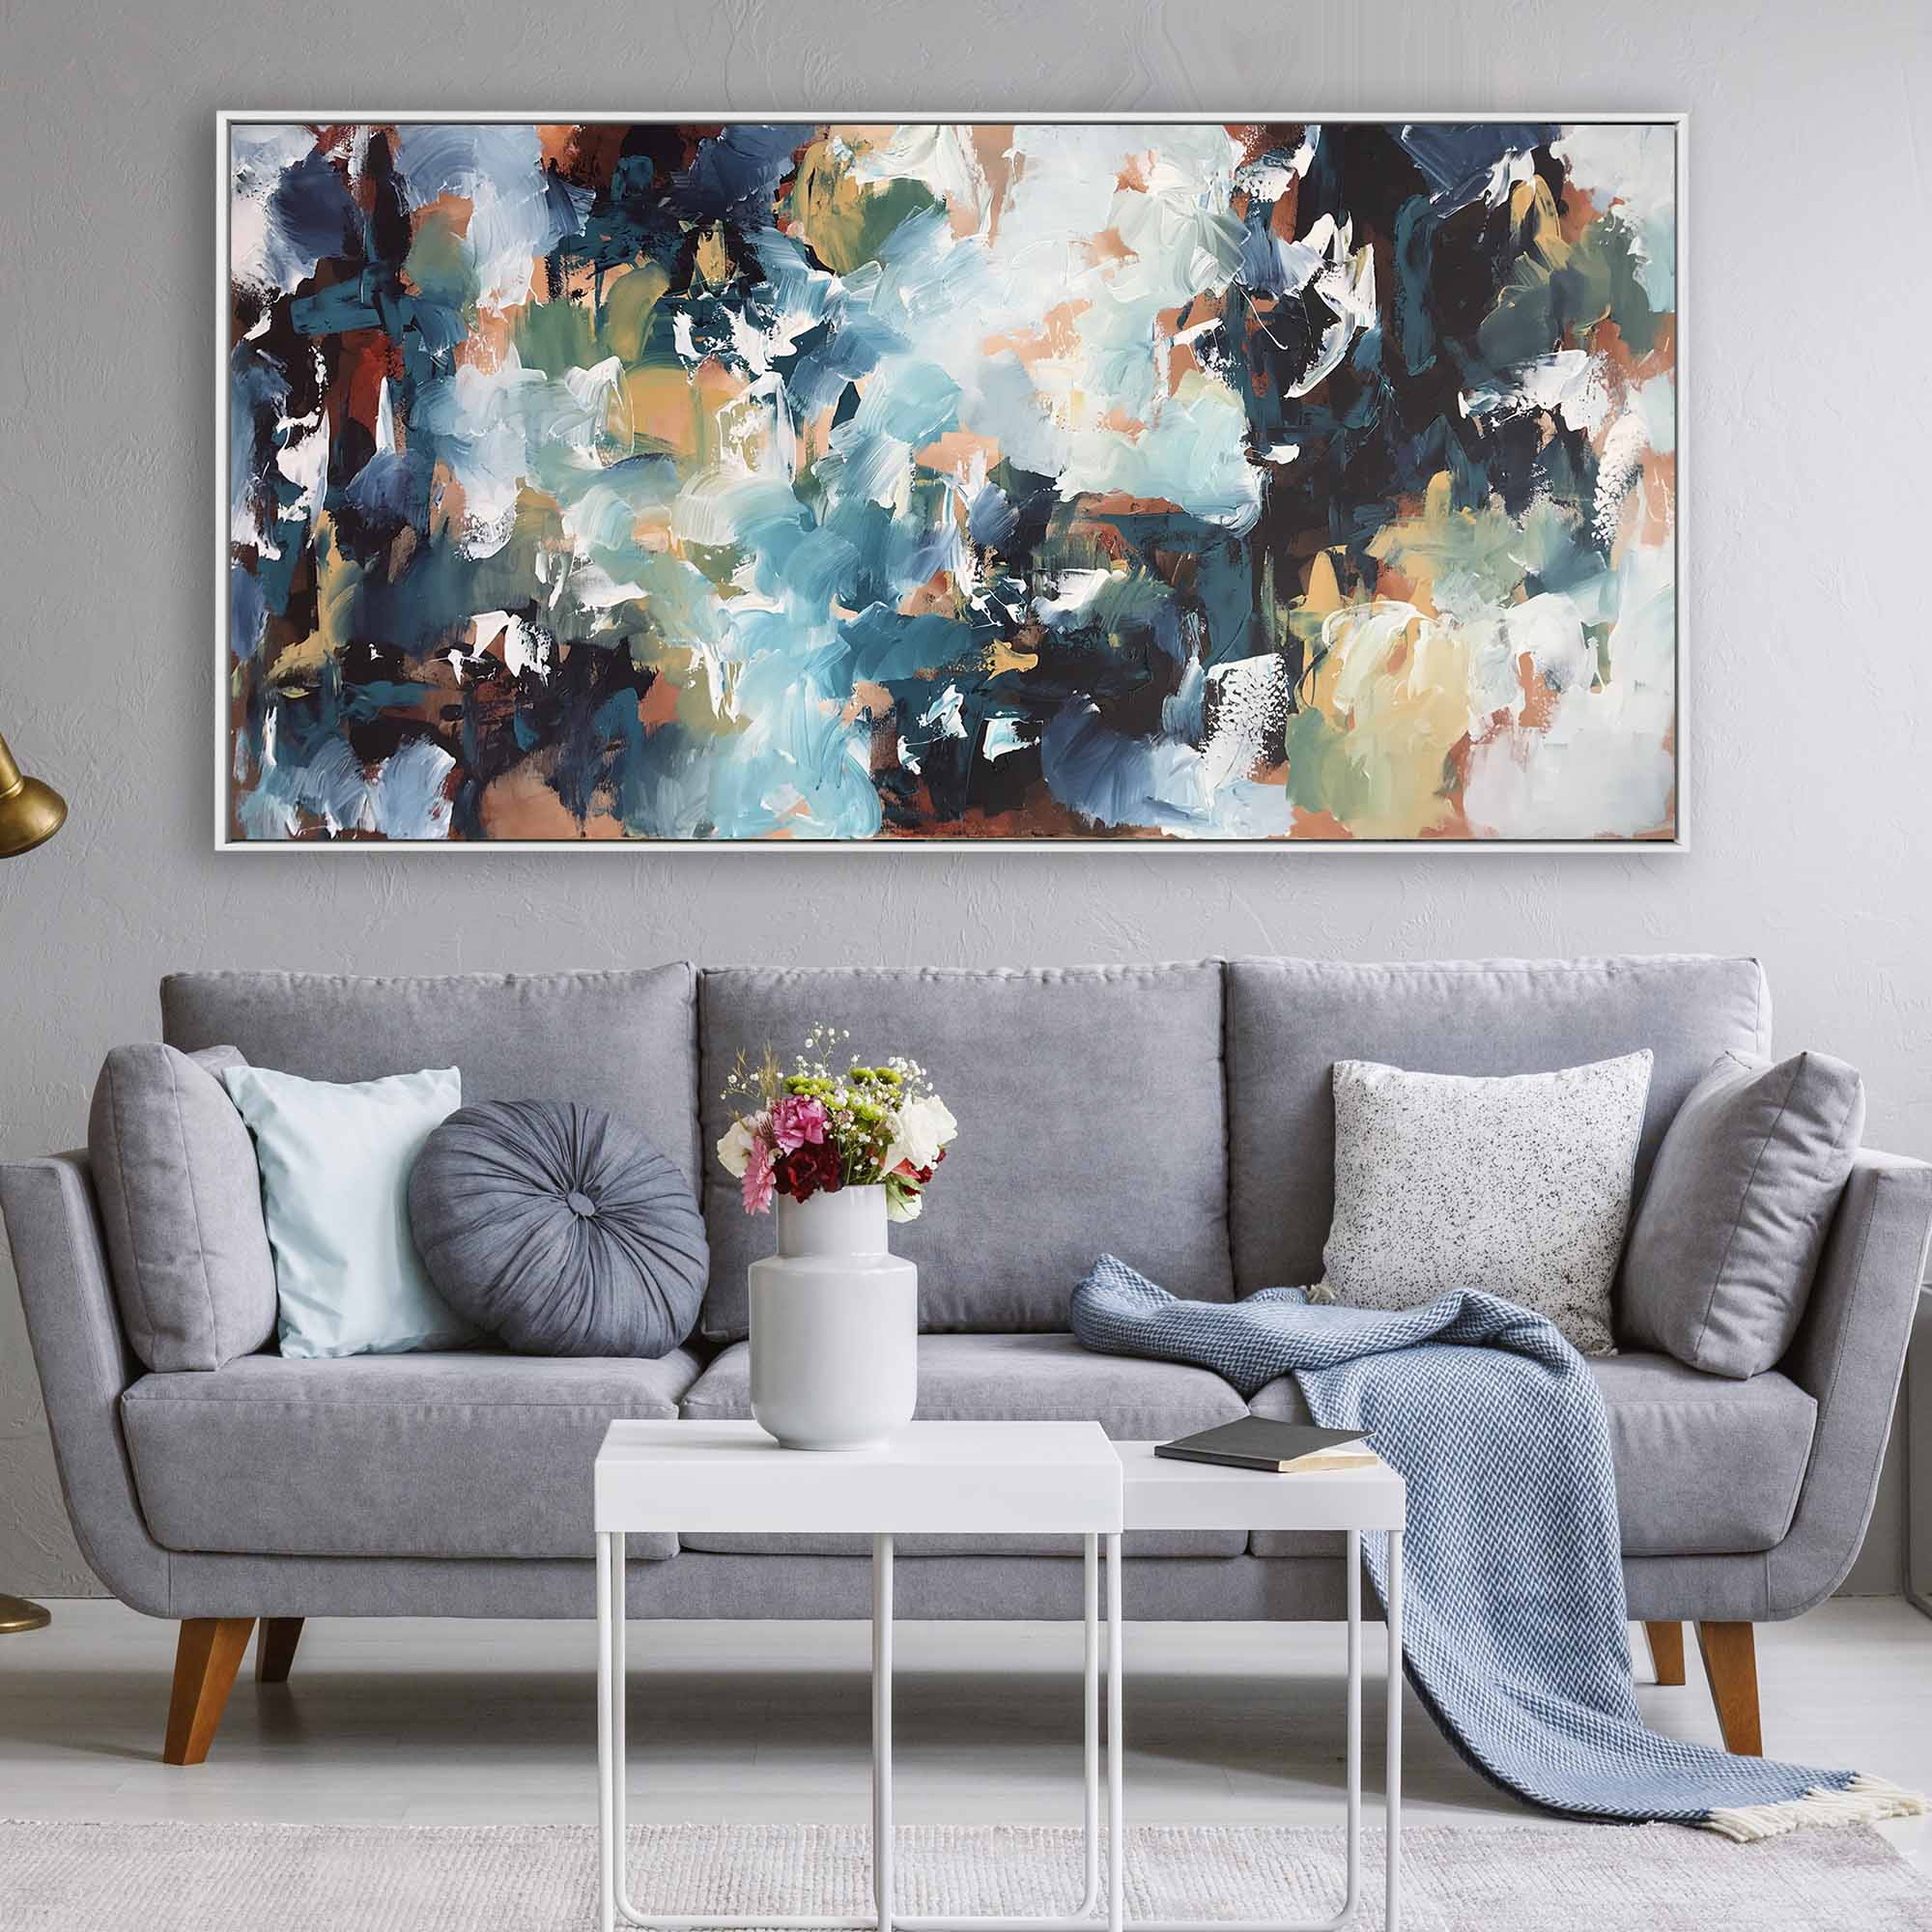 Listening To The Waves - 152x76 cm - Original Painting